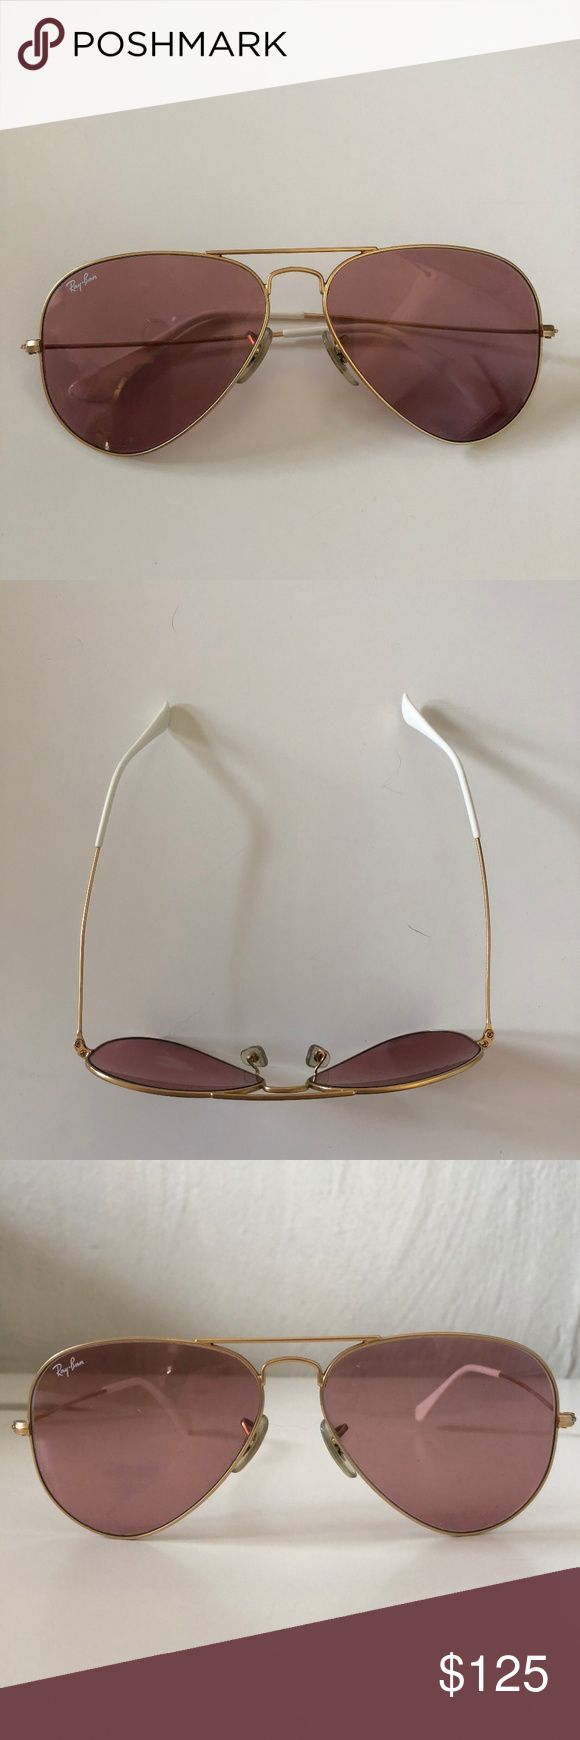 Ray-Ban Pink Aviator Sunglasses with Gold Detail Ray-Ban Aviator Sunglasses in Pink Tint with Gold rim details and White customized ends (not clear - customized the white by myself) Non-polarized (sorry). The cutest sunglasses with a pink bathing suit or just to add a hint of color to a colorless outfit, get nothing but compliments on these! I have had for 3 years but excellent condition and no scratches on lens. Also comes with Case!  Ray-Ban RB3025 Aviator sunglasses are great for any…